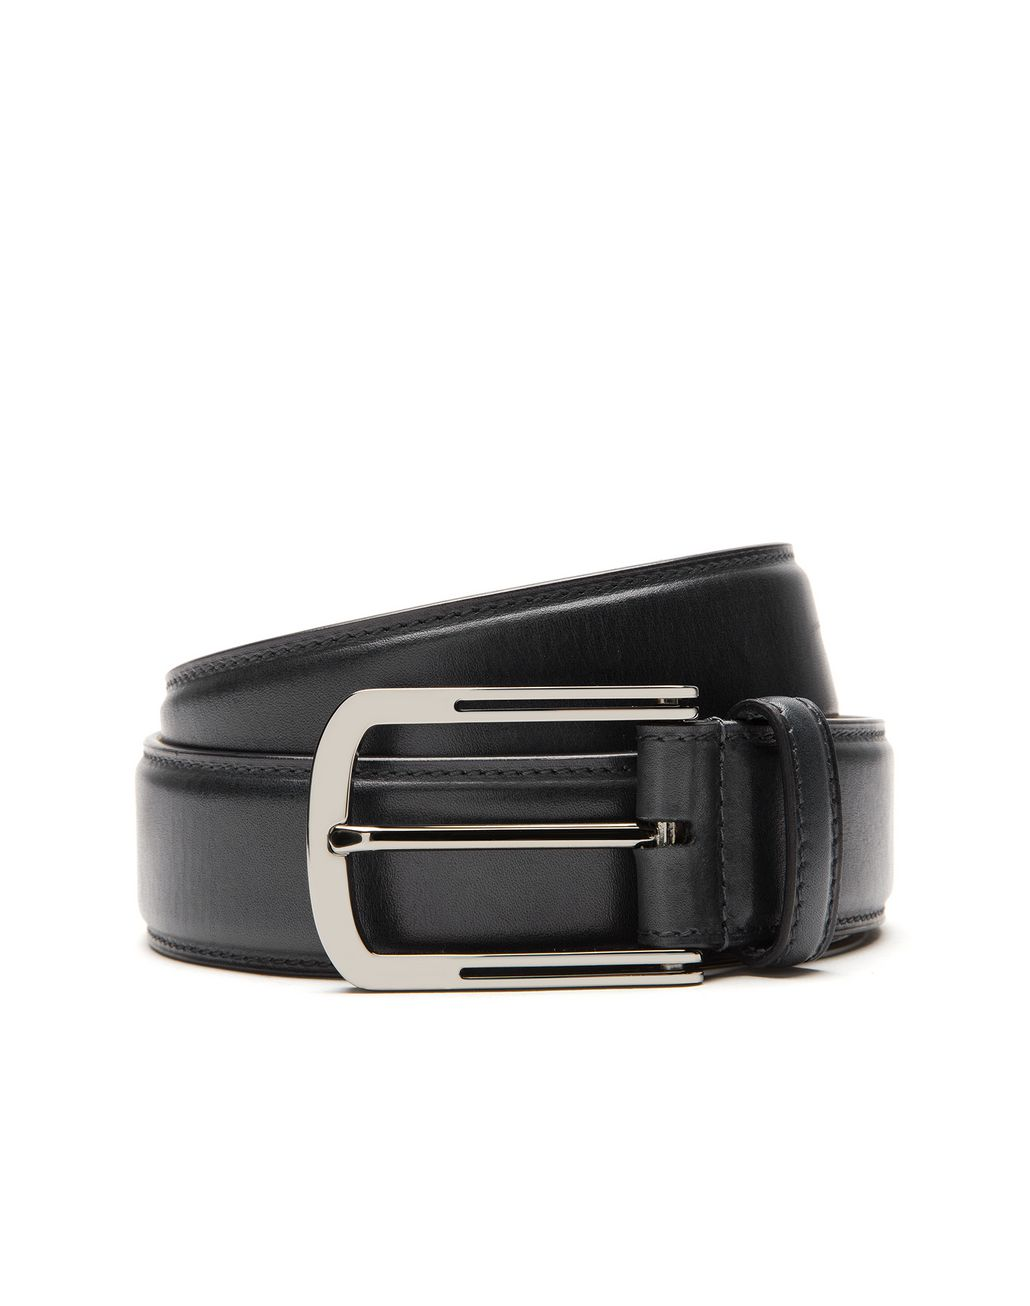 BRIONI Black Belt in Calfskin Leather Belt Man r